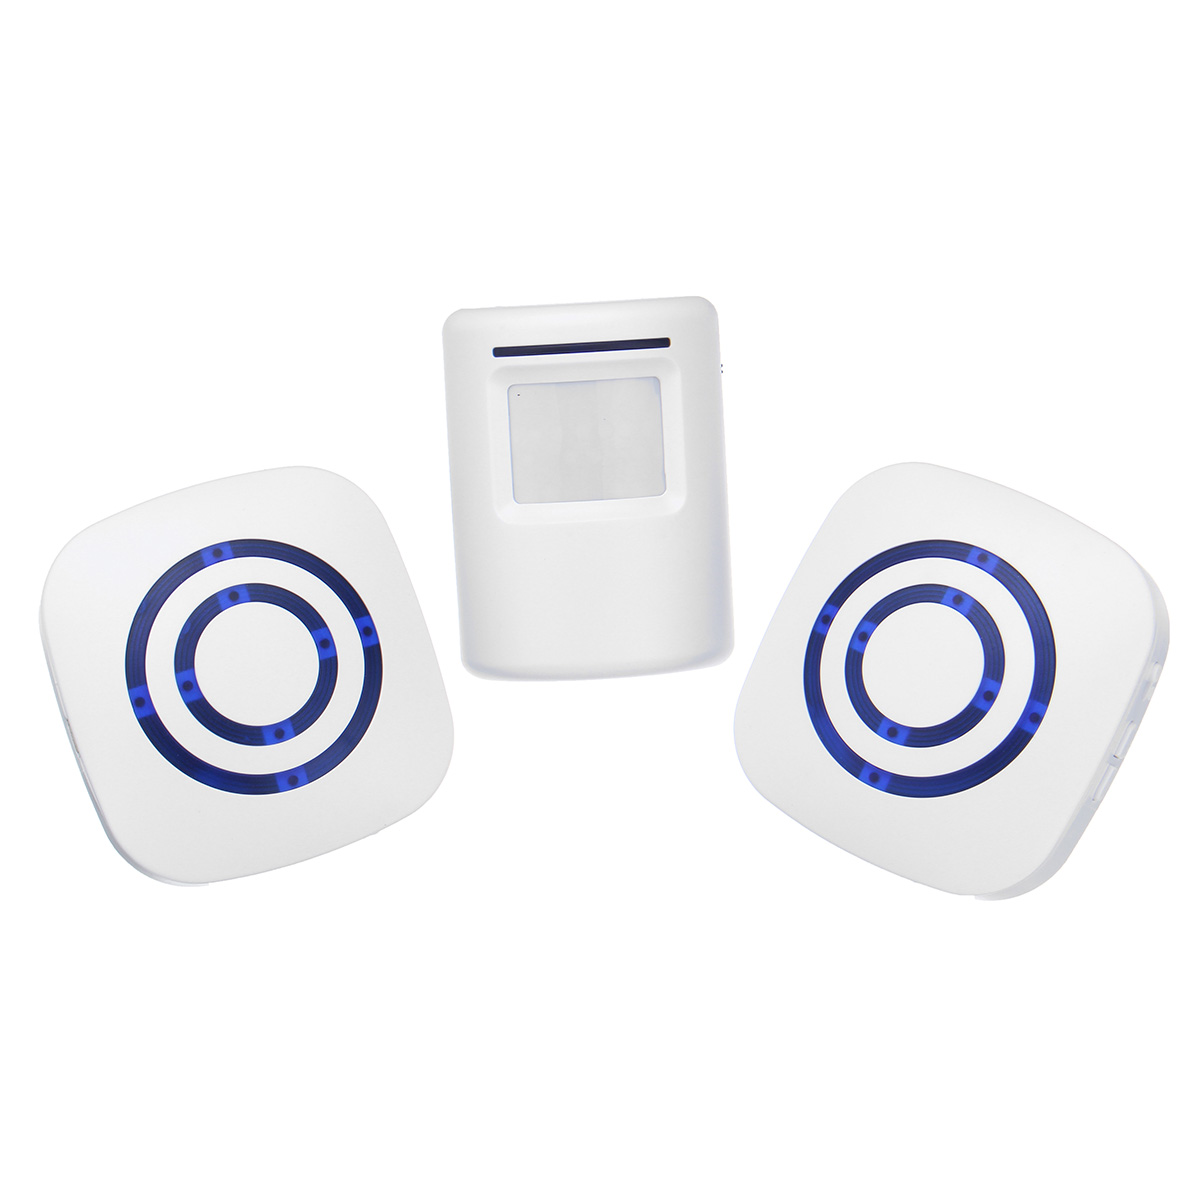 EU Plug Home Wireless PIR Motion Sensor Wireless DoorBell Door Chime Bell Remote Control Doorbell Alarm